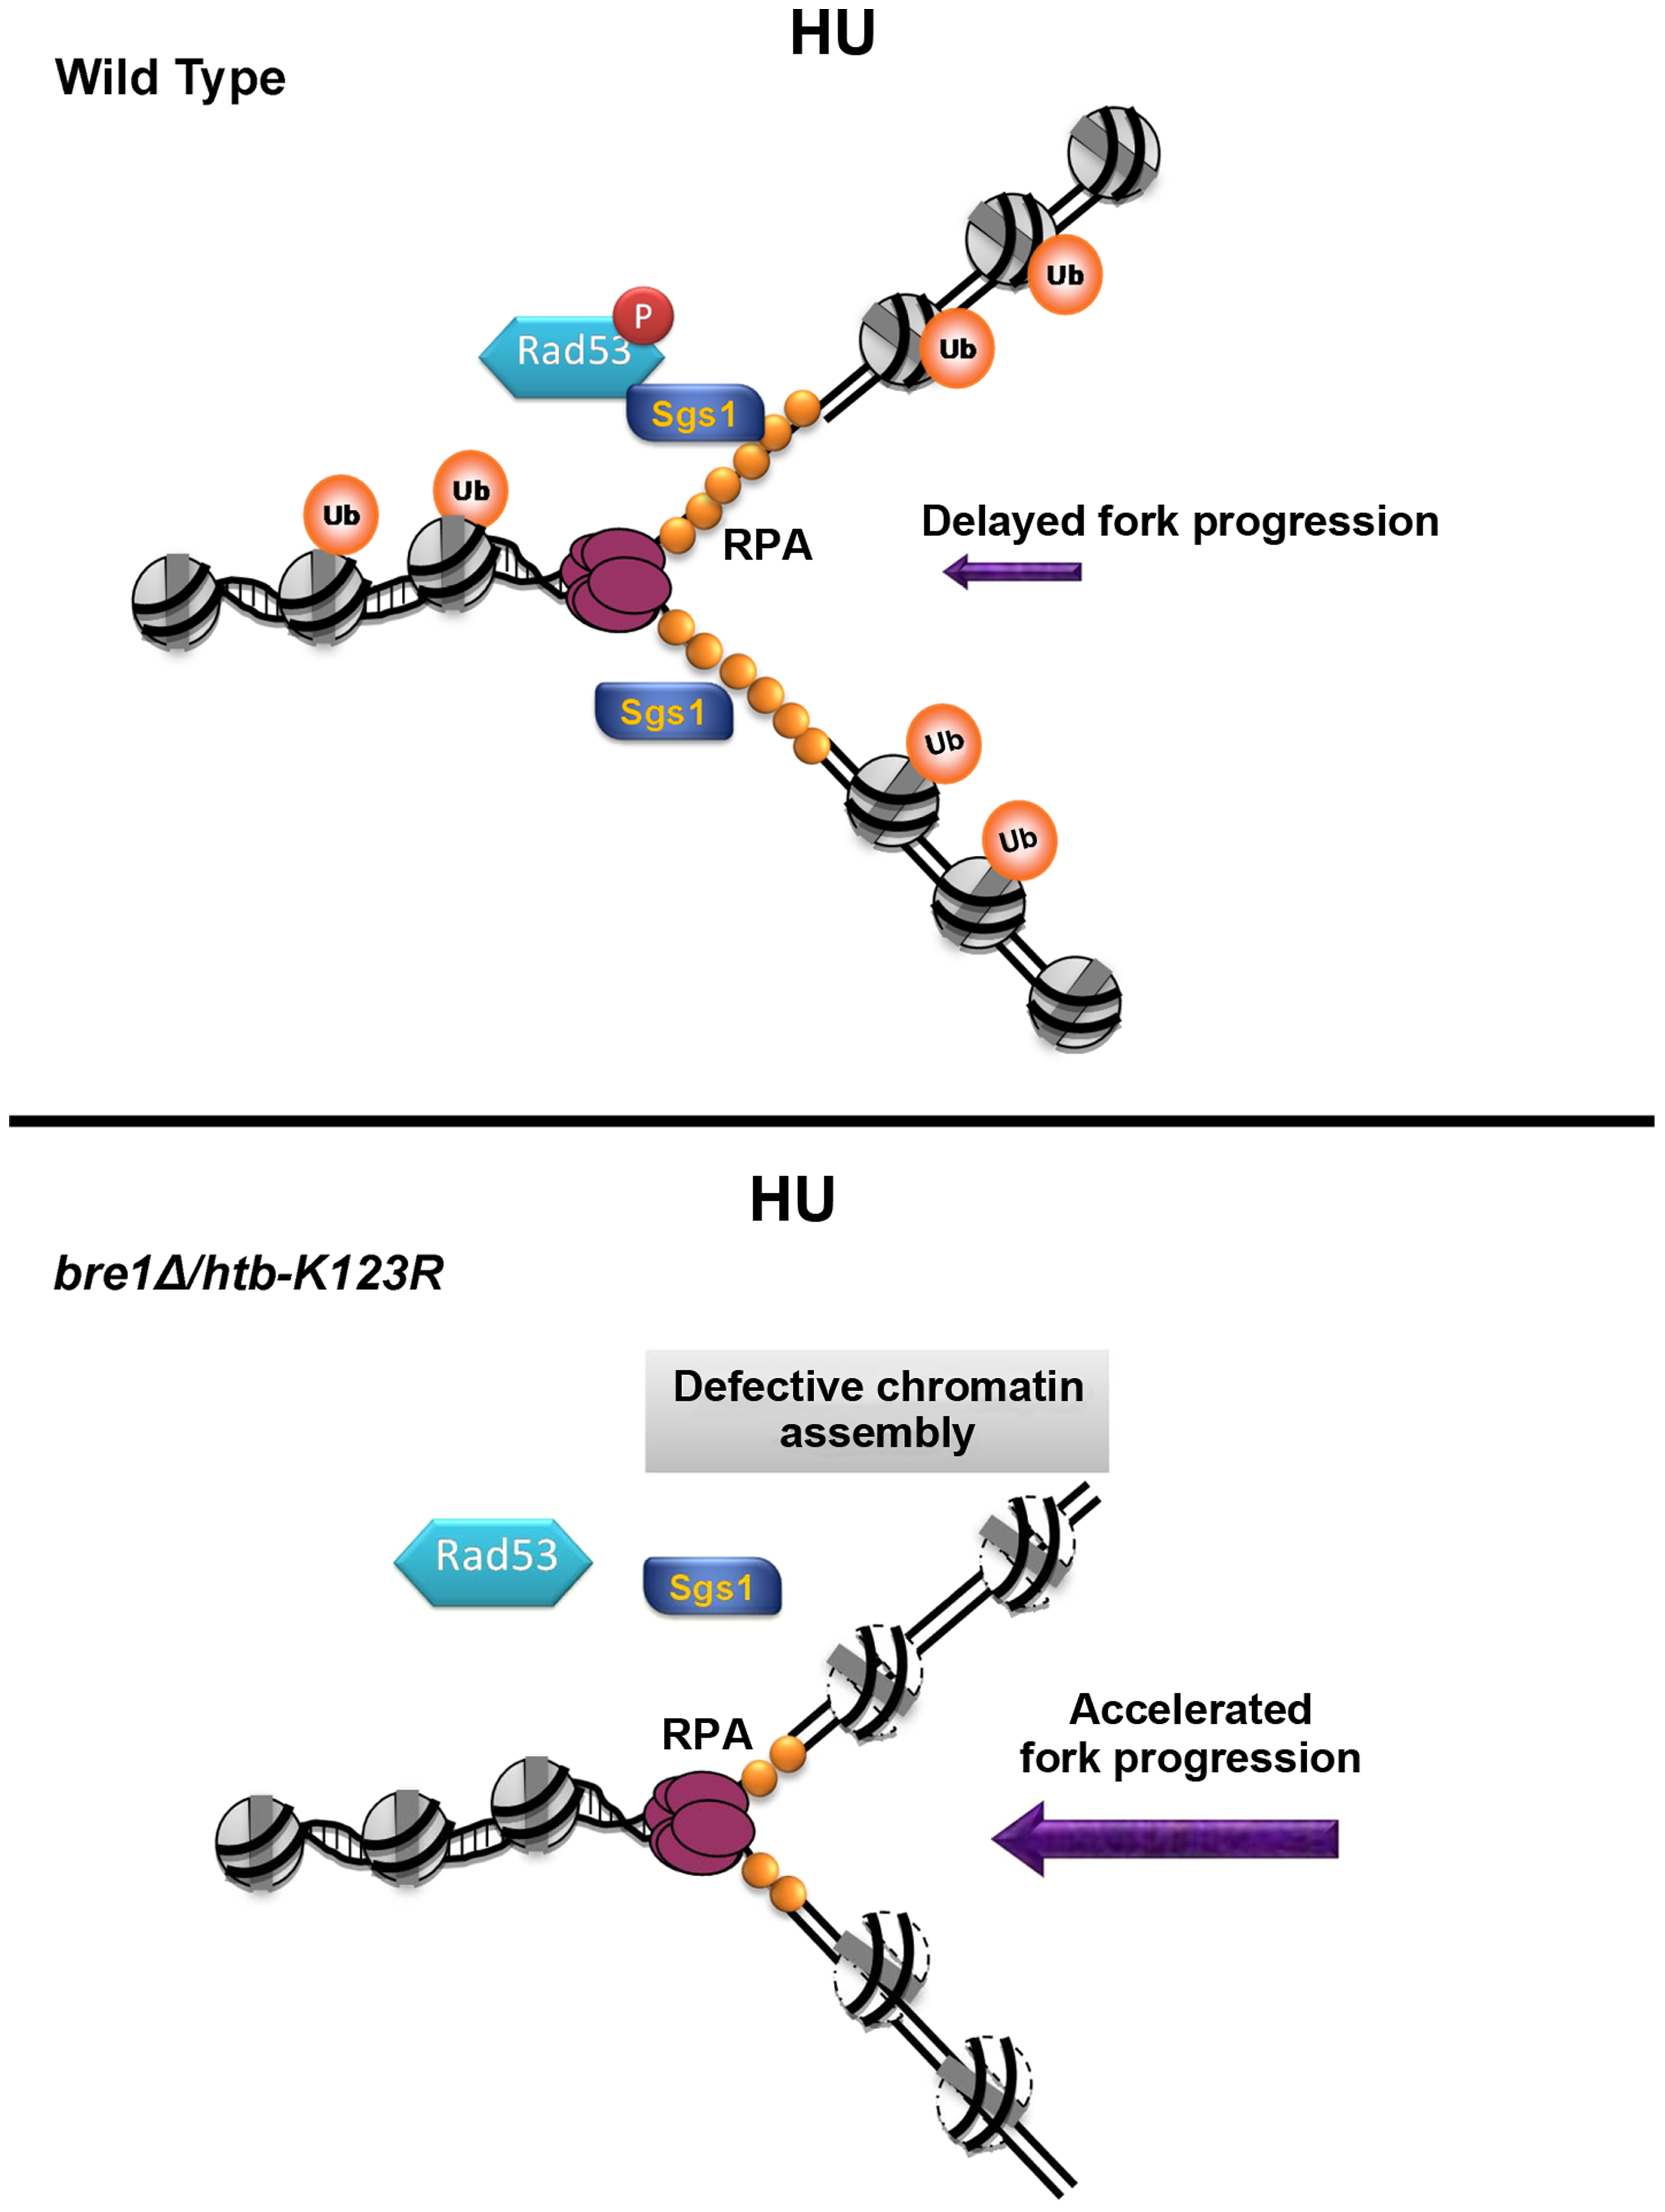 A model for how H2B mono-ubiquitylation facilitates fork stability under replication stress.